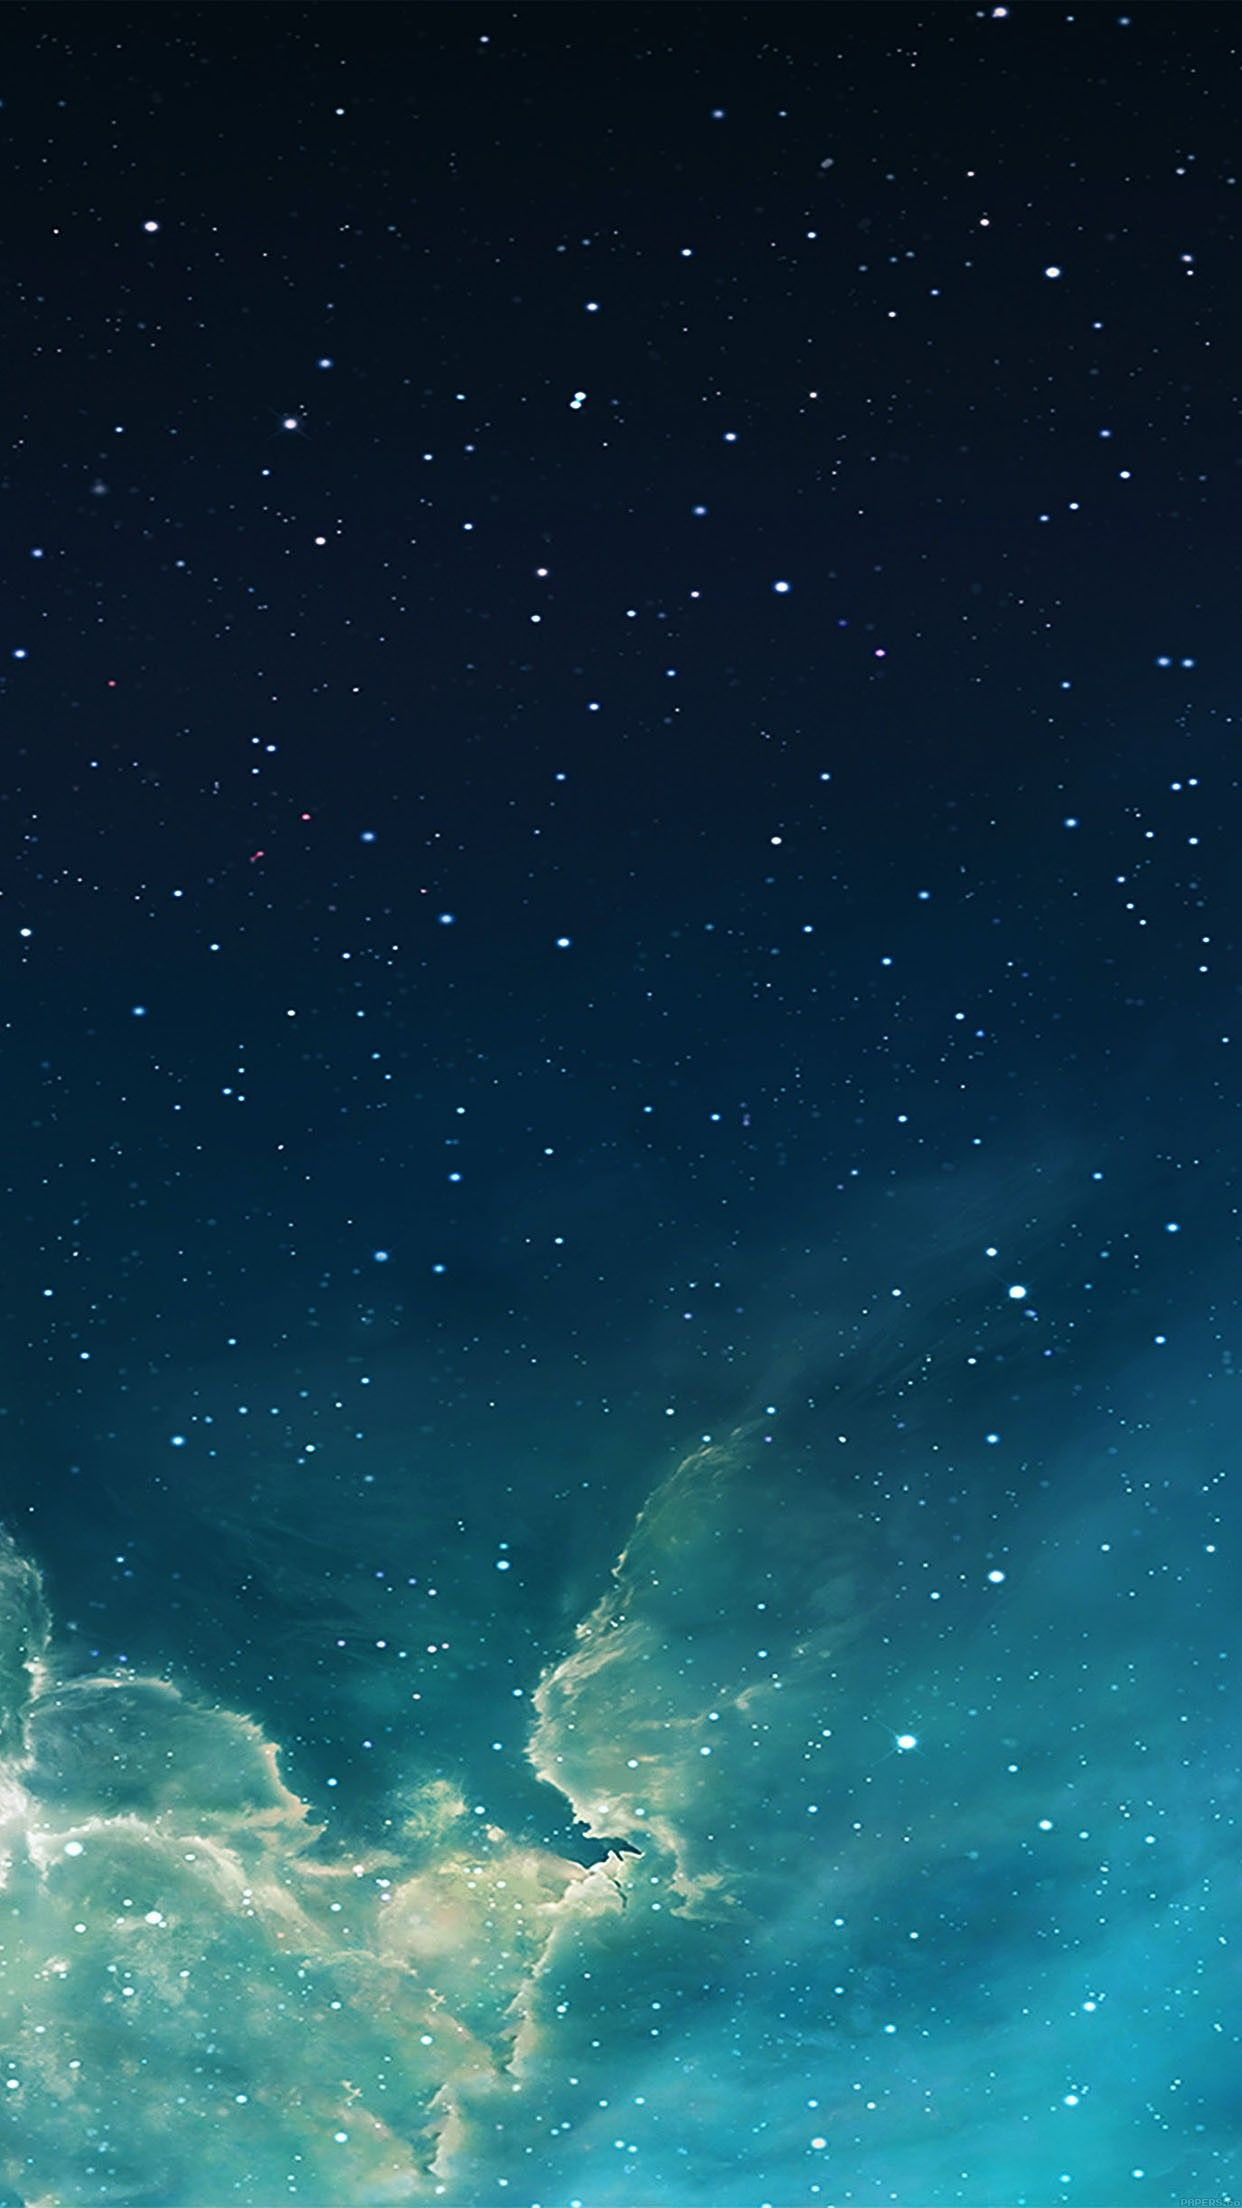 wallpaper galaxy blue 7 starry star sky iphone 6 plus wallpapers 1242x2208